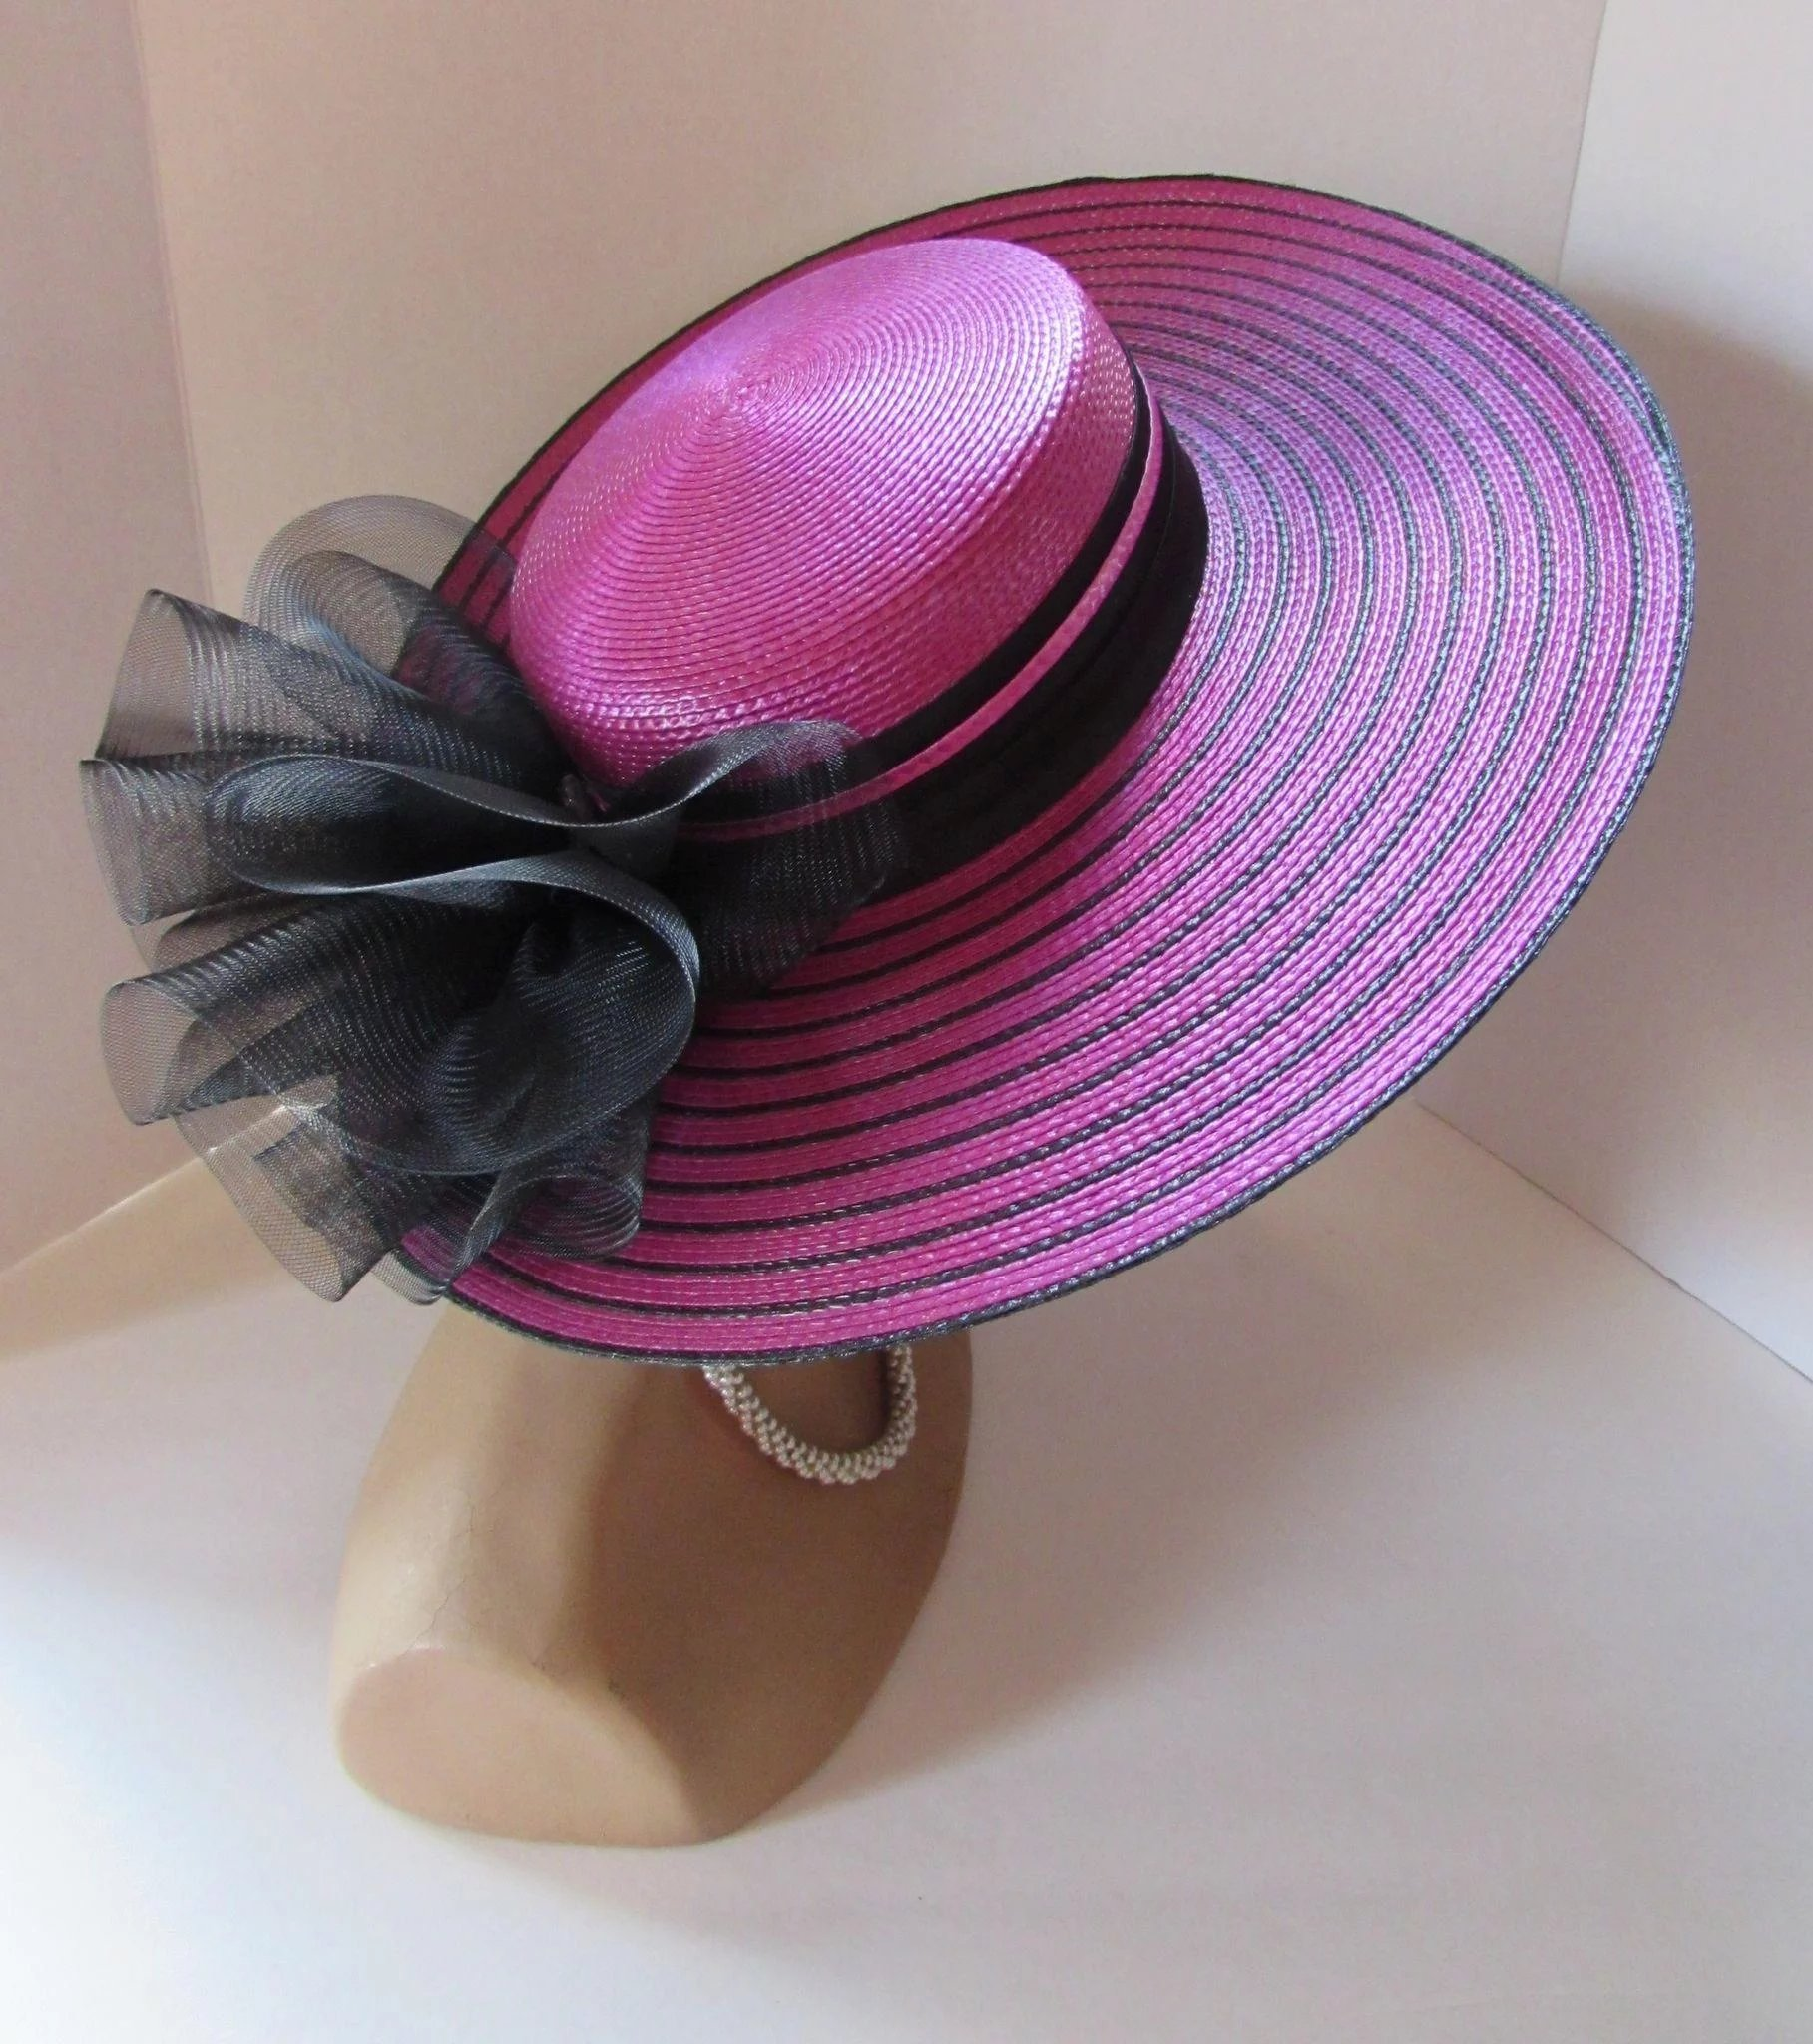 Jaunty Wide Brim Church Or Derby Hat In Stripes Of Fuchsia